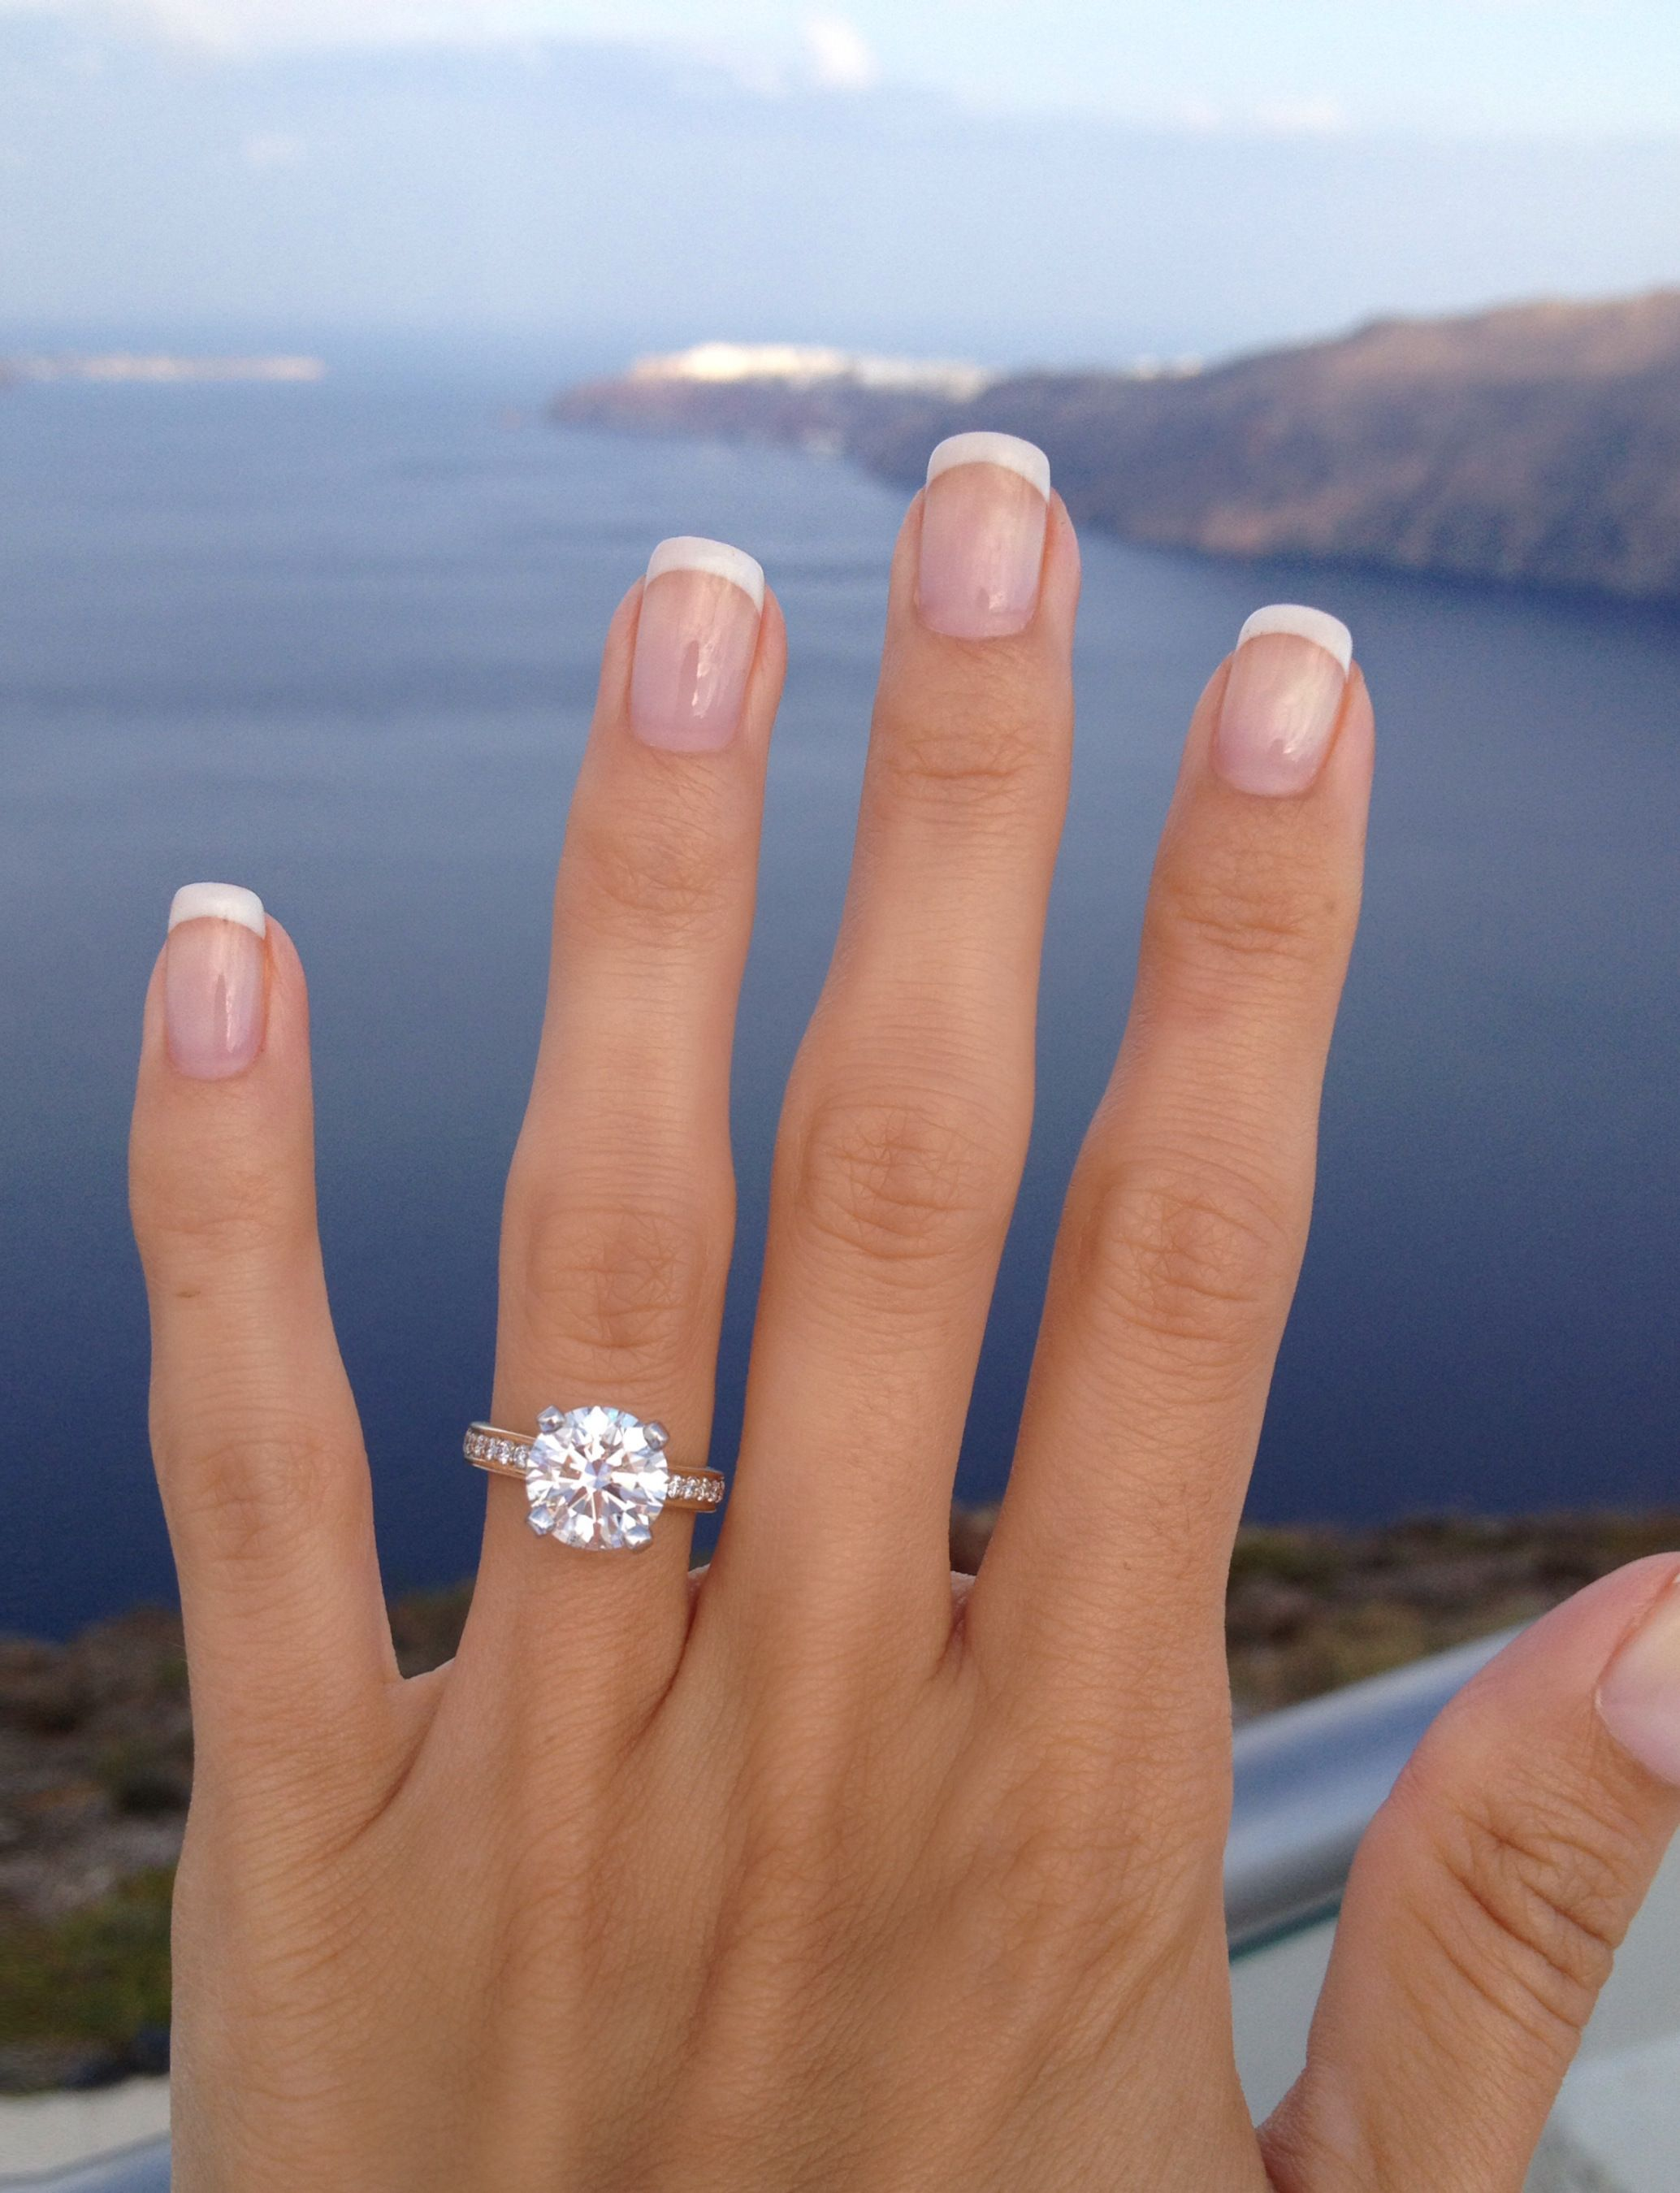 This ring is AMAZING.